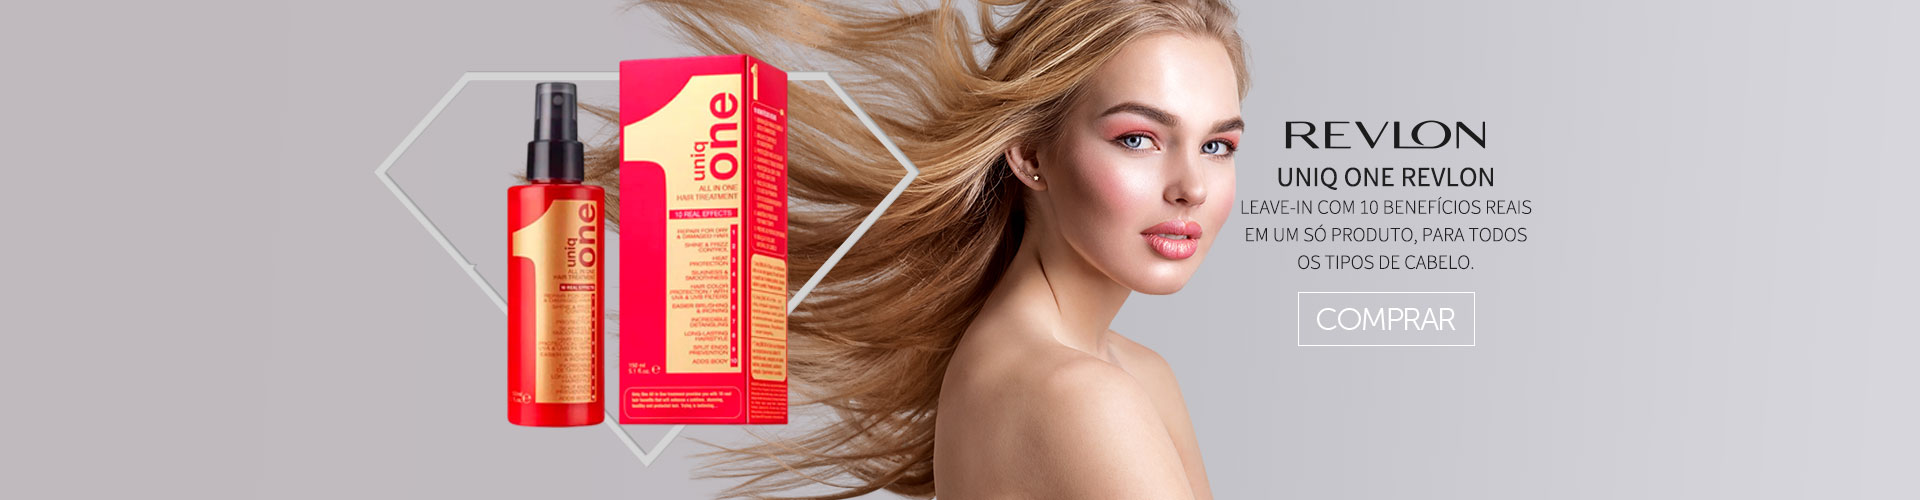 Uniq One Revlon Hair Treatment 10 Em 1